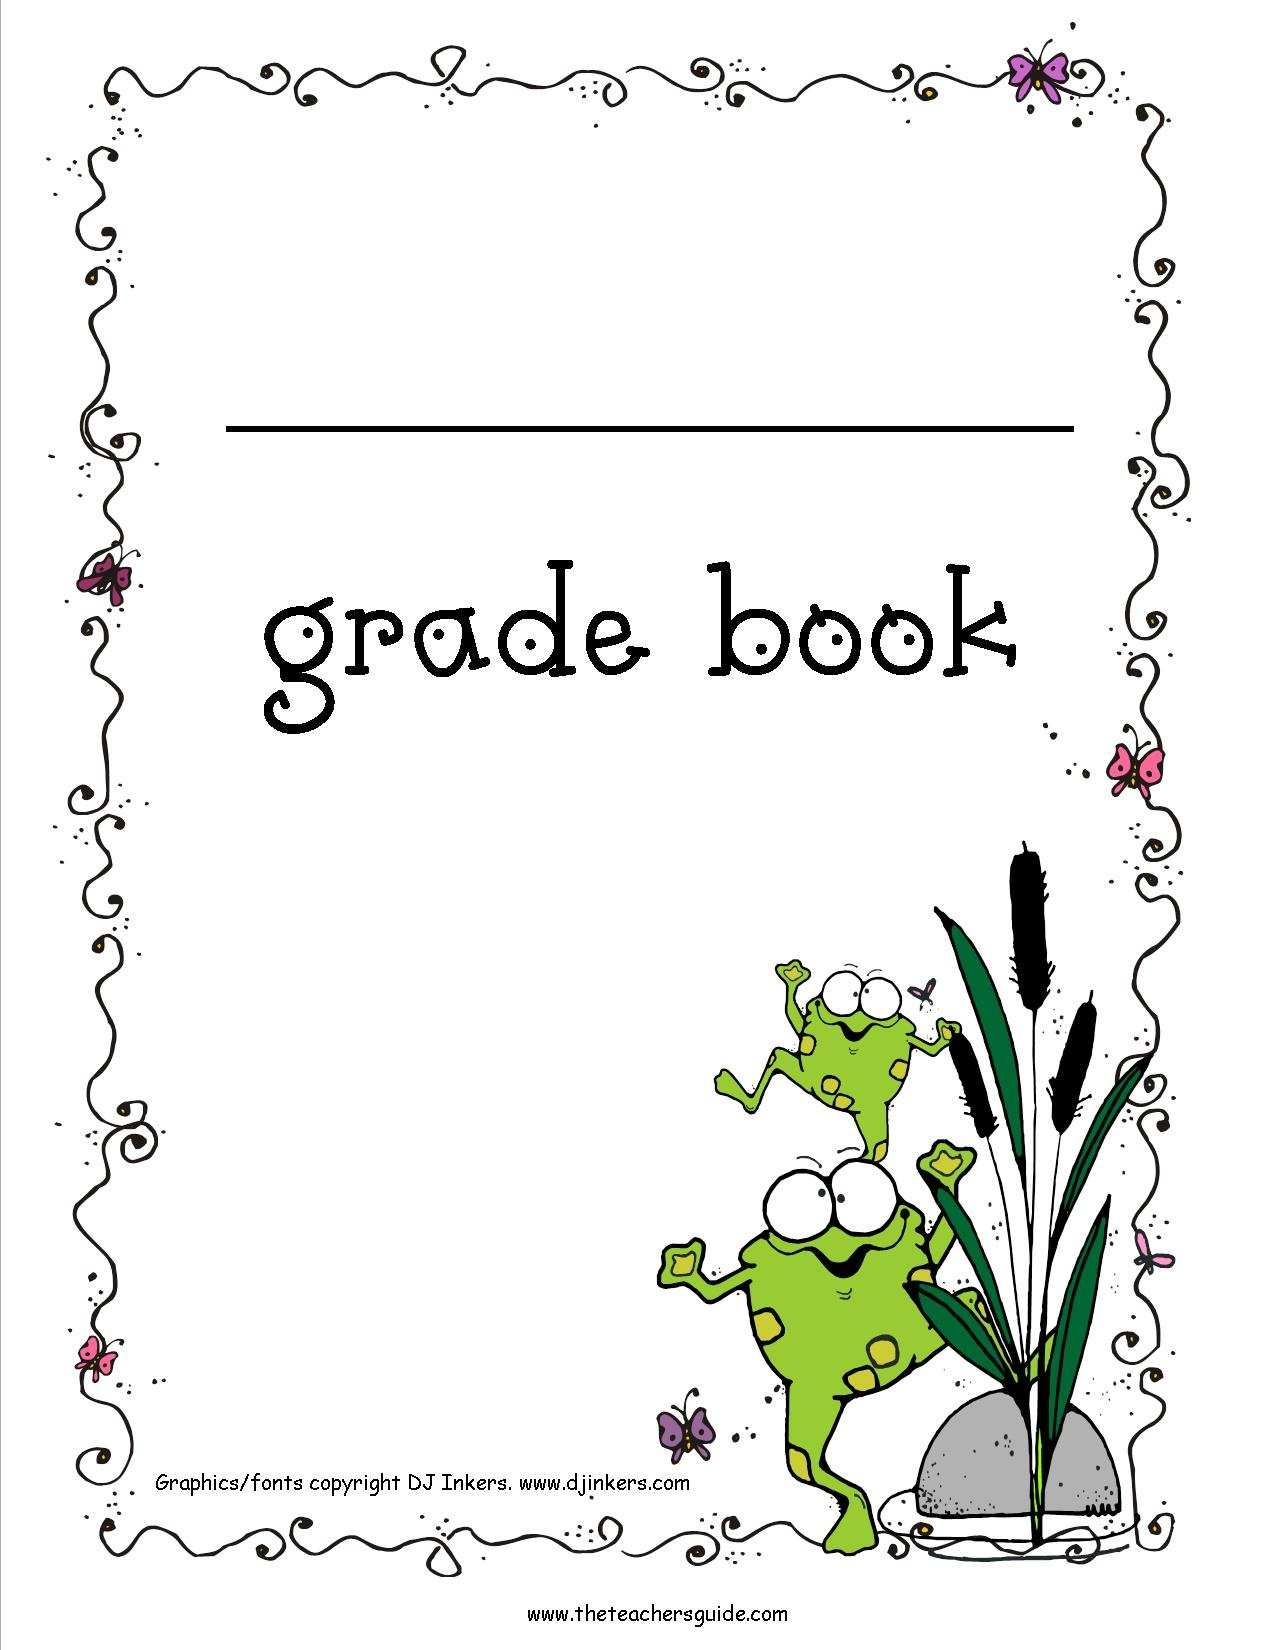 Free Printable Grade Books - Free Printable Gradebook